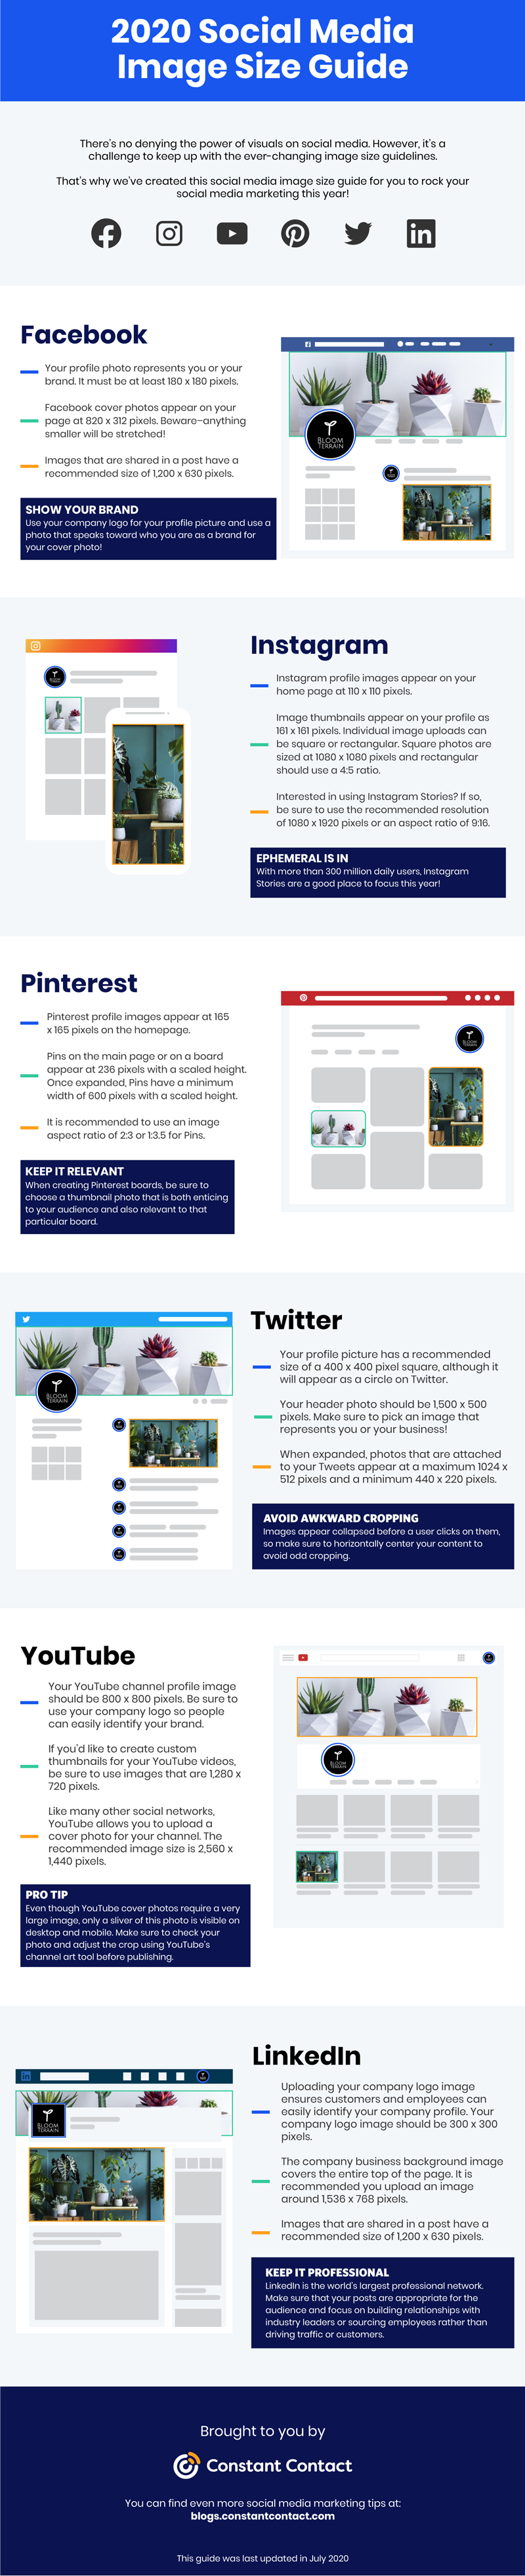 2020 Social Media Image Sizes Cheat Sheet Constant Contact